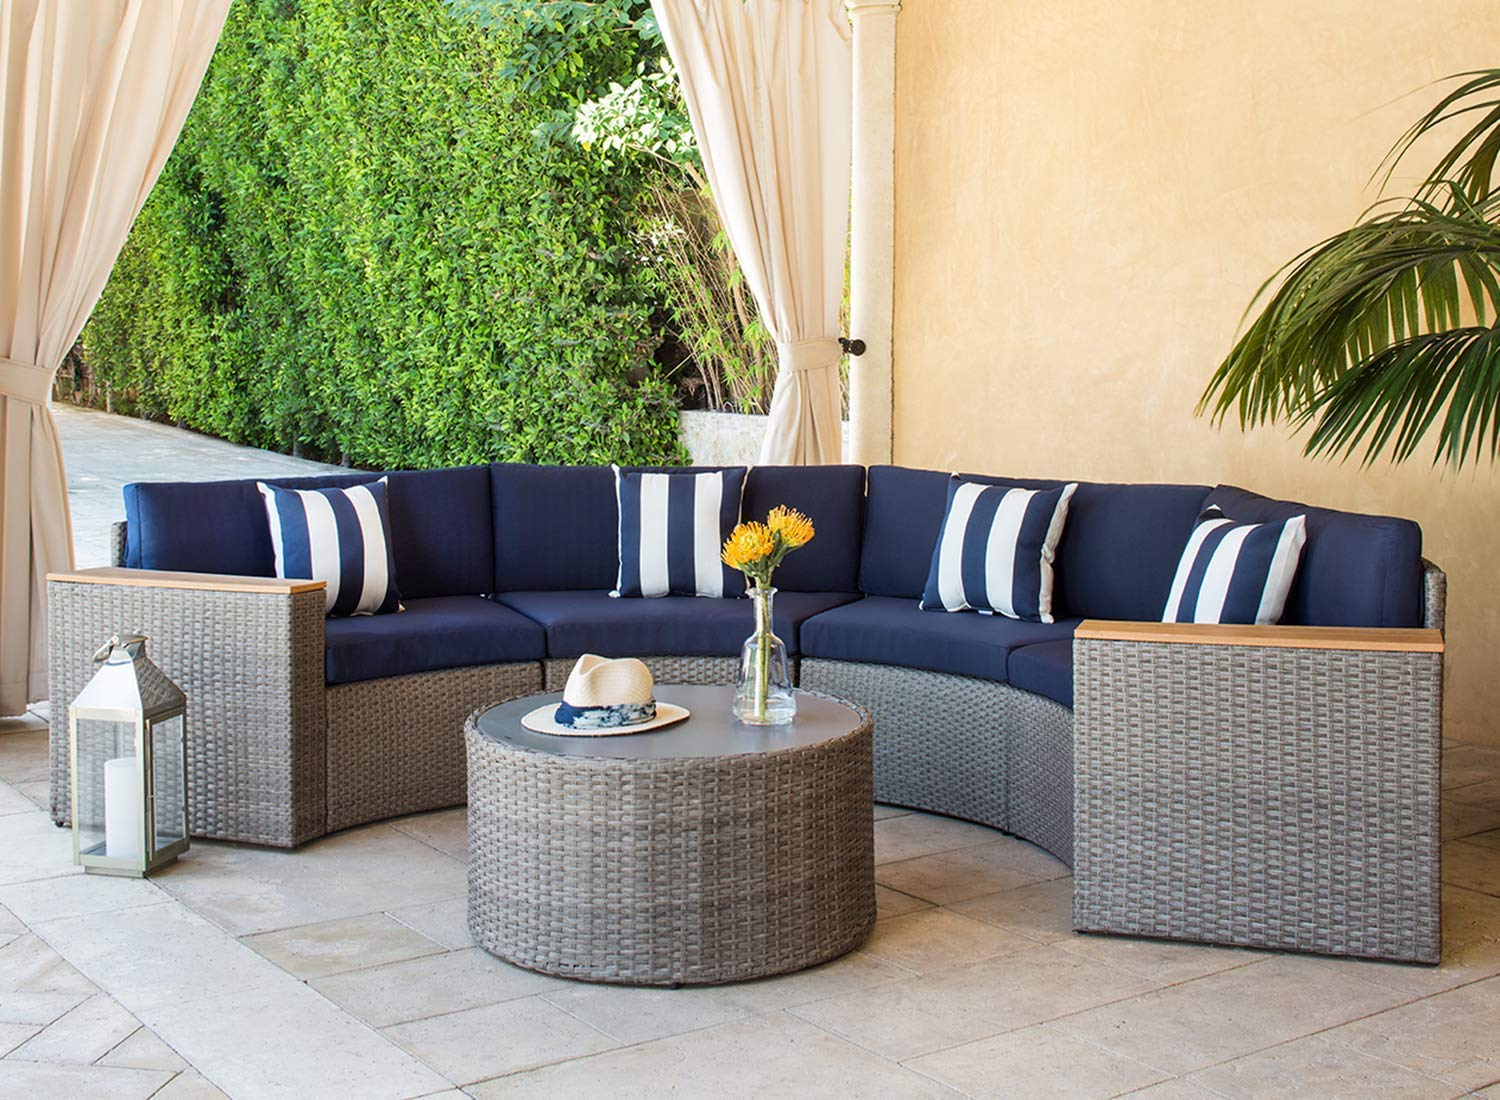 Suncrown Outdoor Half-Moon Crescent Sectional Furniture ... on 5 Piece Sectional Patio Set id=53624